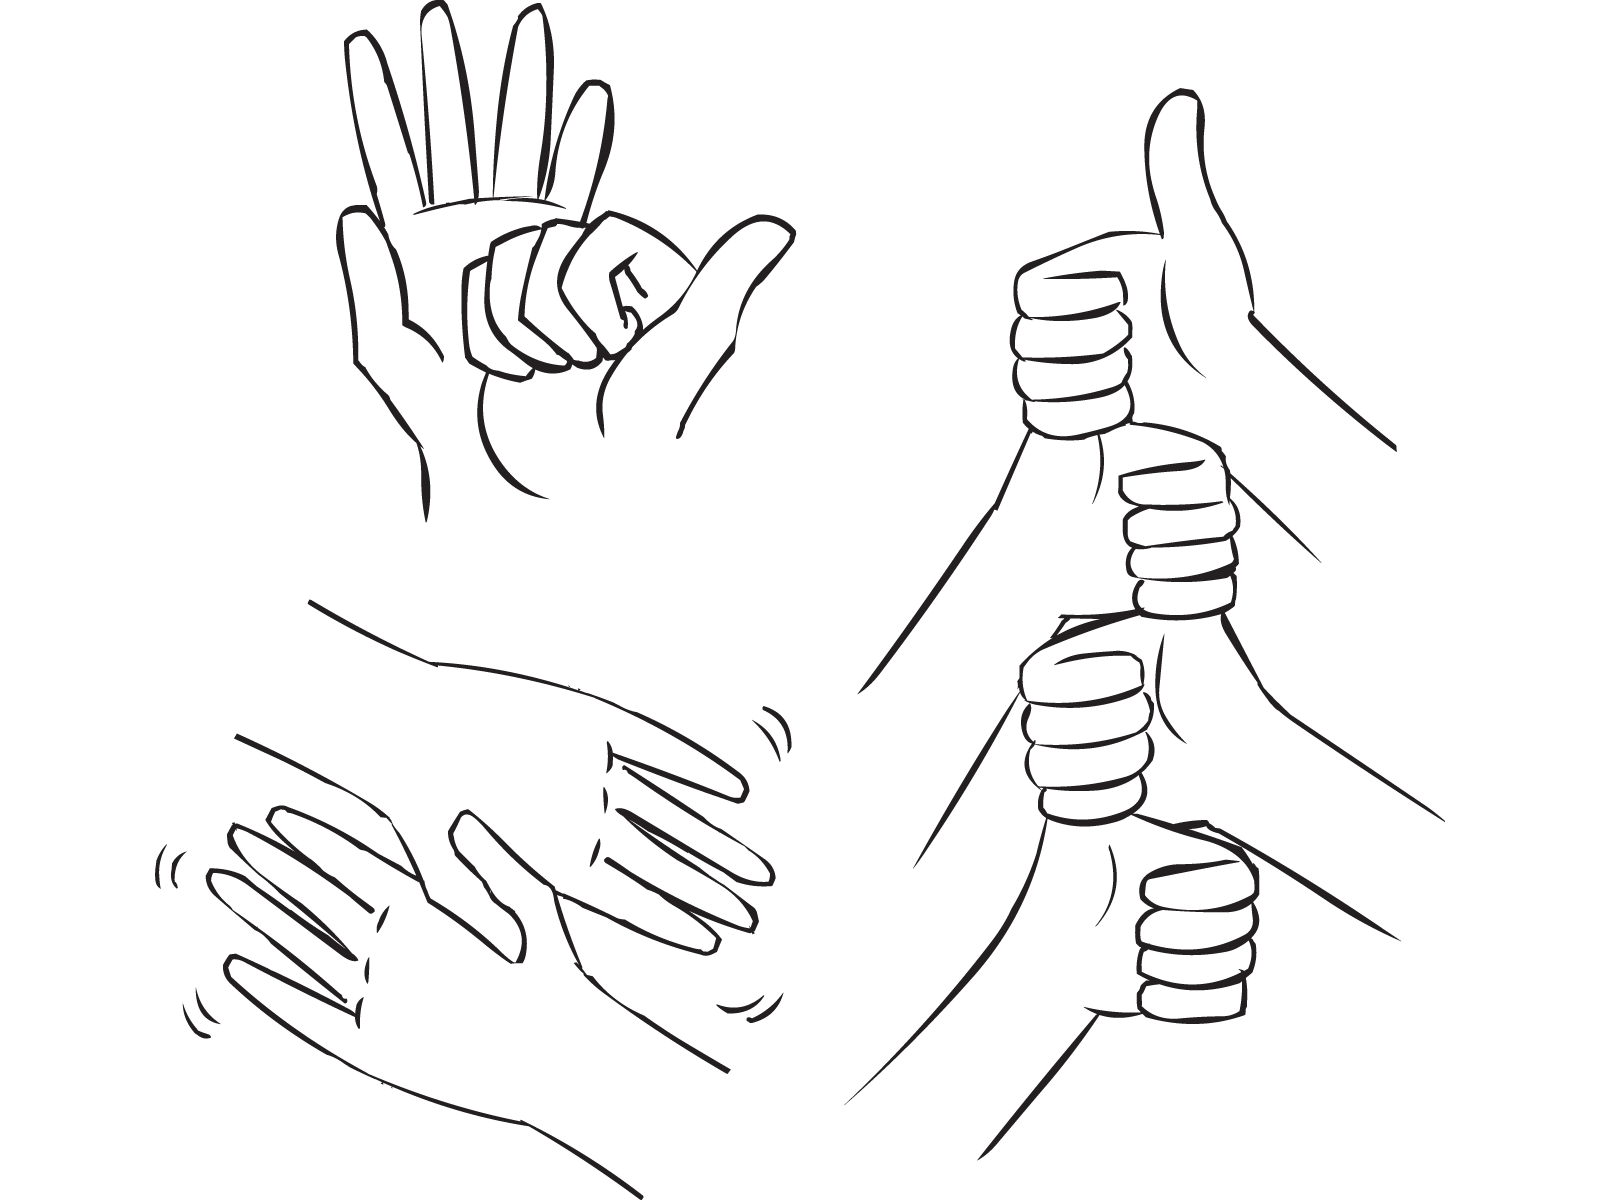 Handshake drawing at getdrawings. Milkshake clipart hand drawn